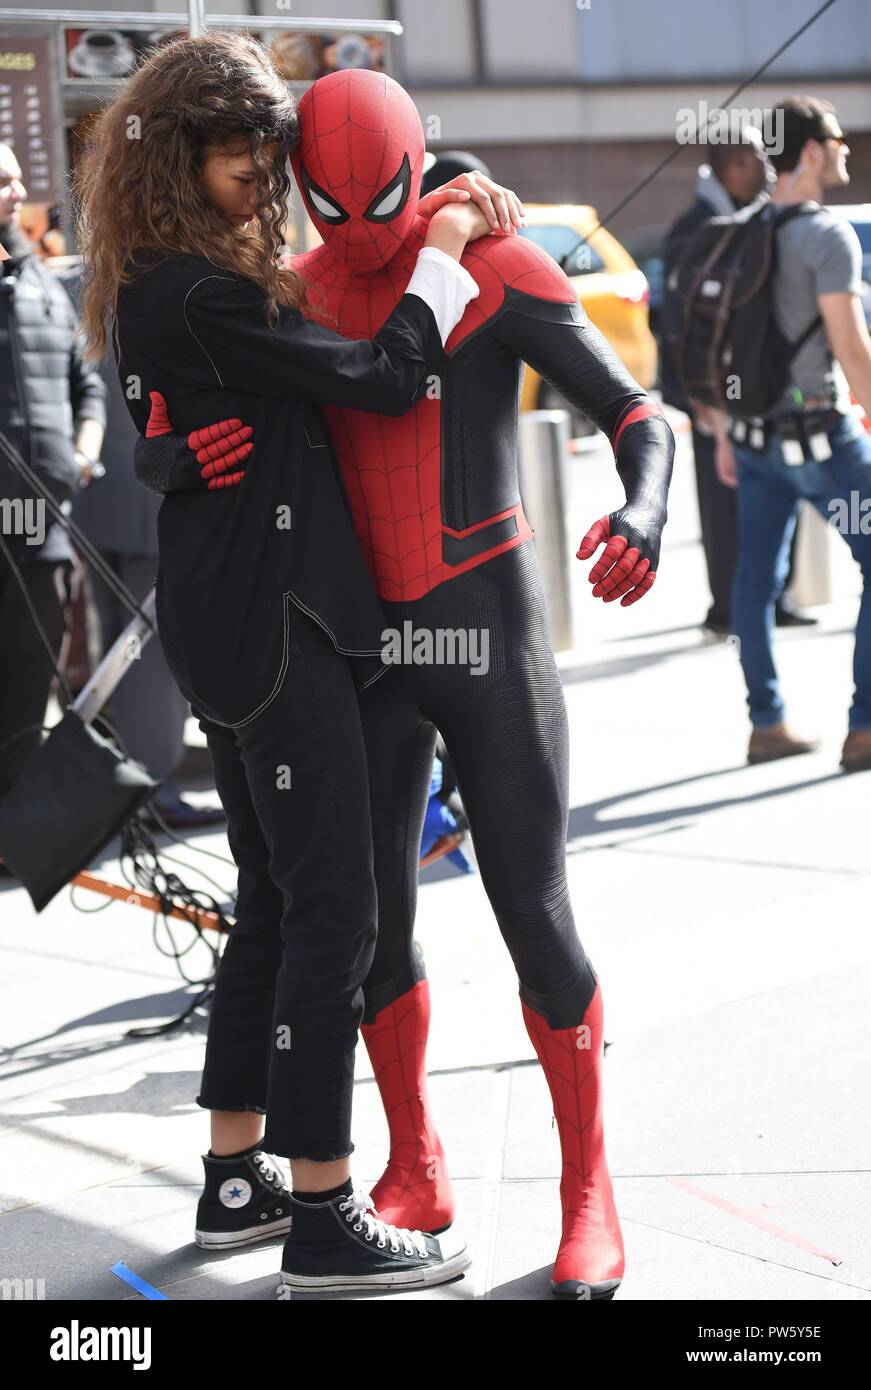 New York, NY, USA. 12th Oct, 2018. Zendaya, Tom Holland on location for SPIDER-MAN: FAR FROM HOME Film Shoot, New York, NY October 12, 2018. Credit: Kristin Callahan/Everett Collection/Alamy Live News Stock Photo